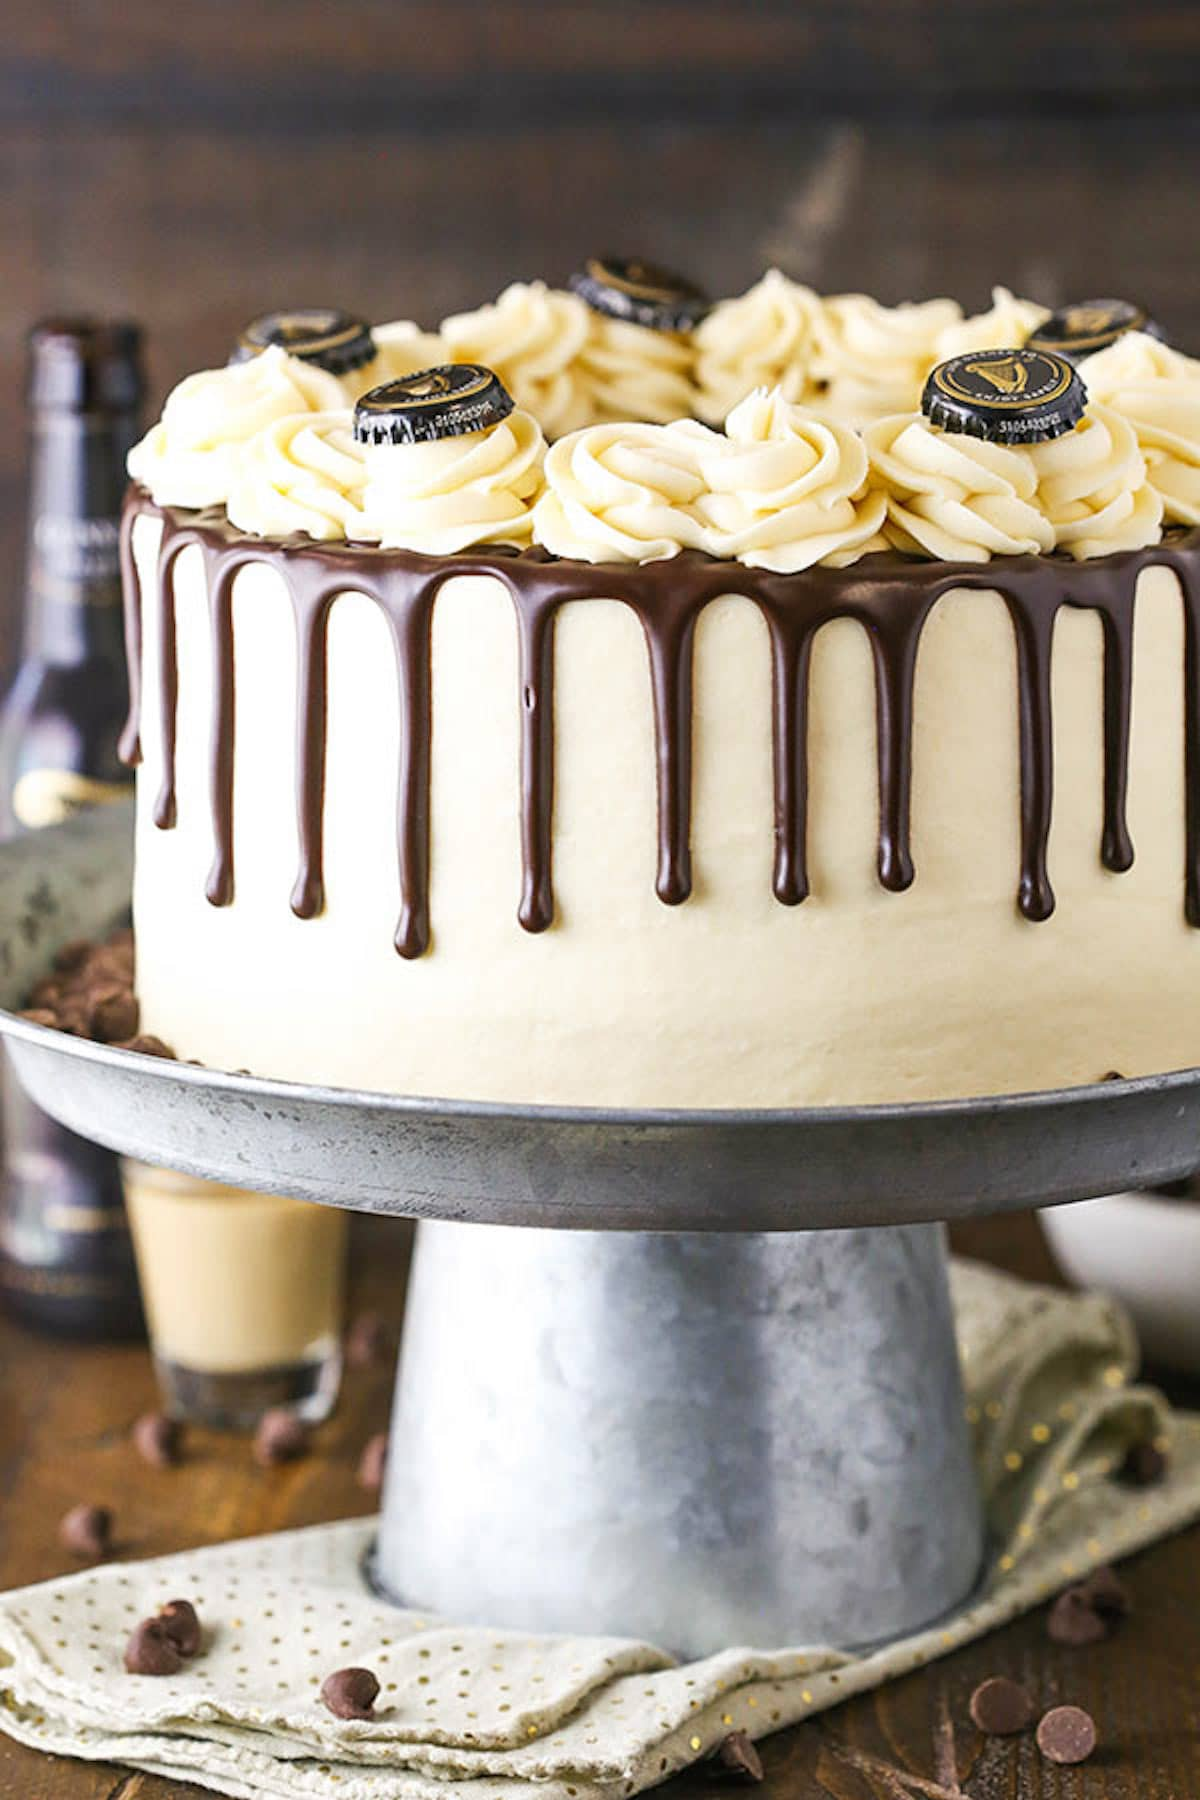 A Guinness Cake with a Chocolate Ganache Drip Design on a Cake Stand